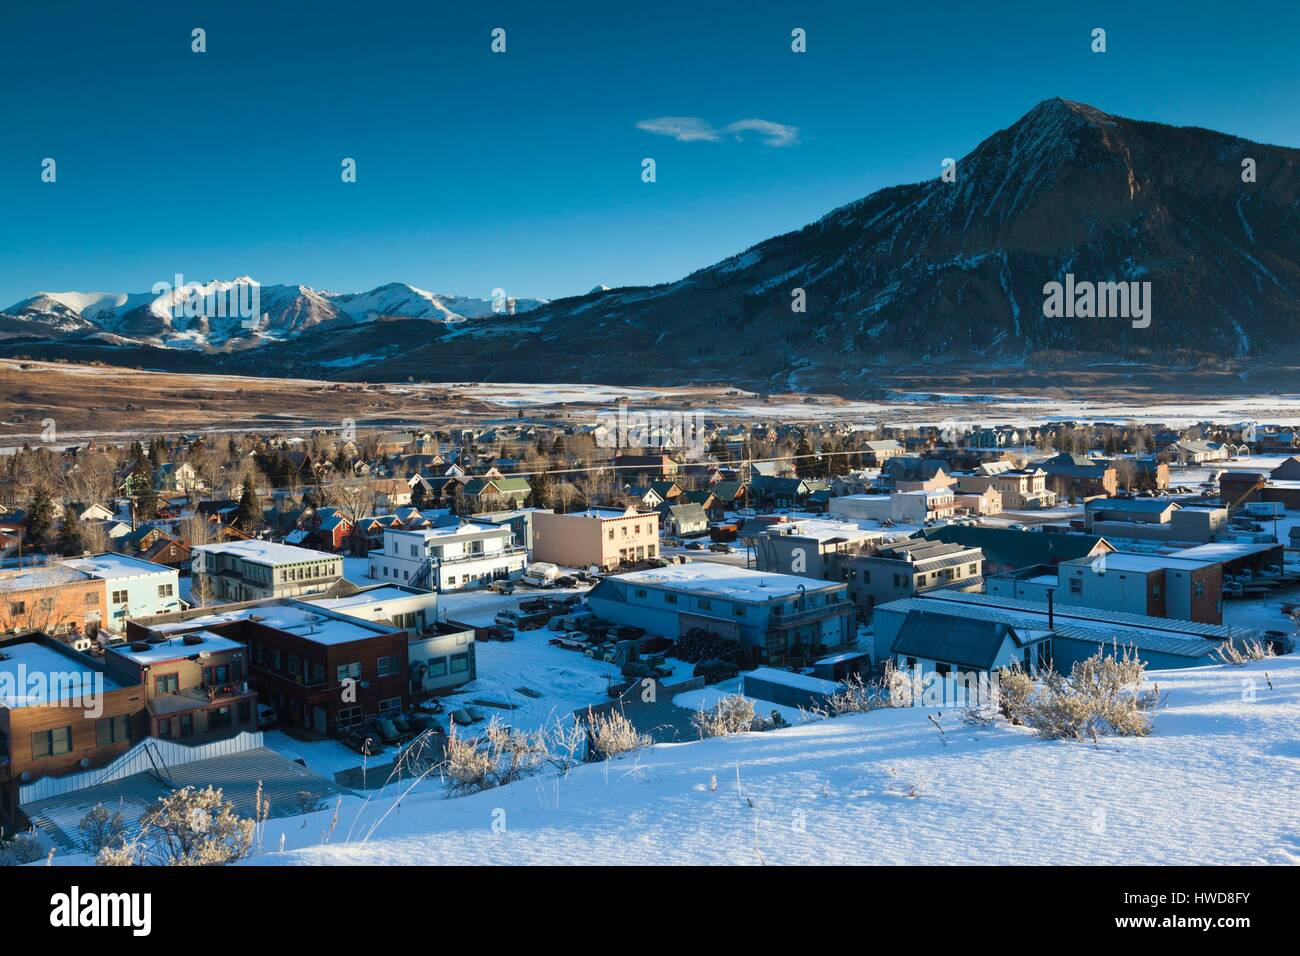 United States, Colorado, Crested Butte, elevated town view, with Mount Crested Butte, morning Stock Photo